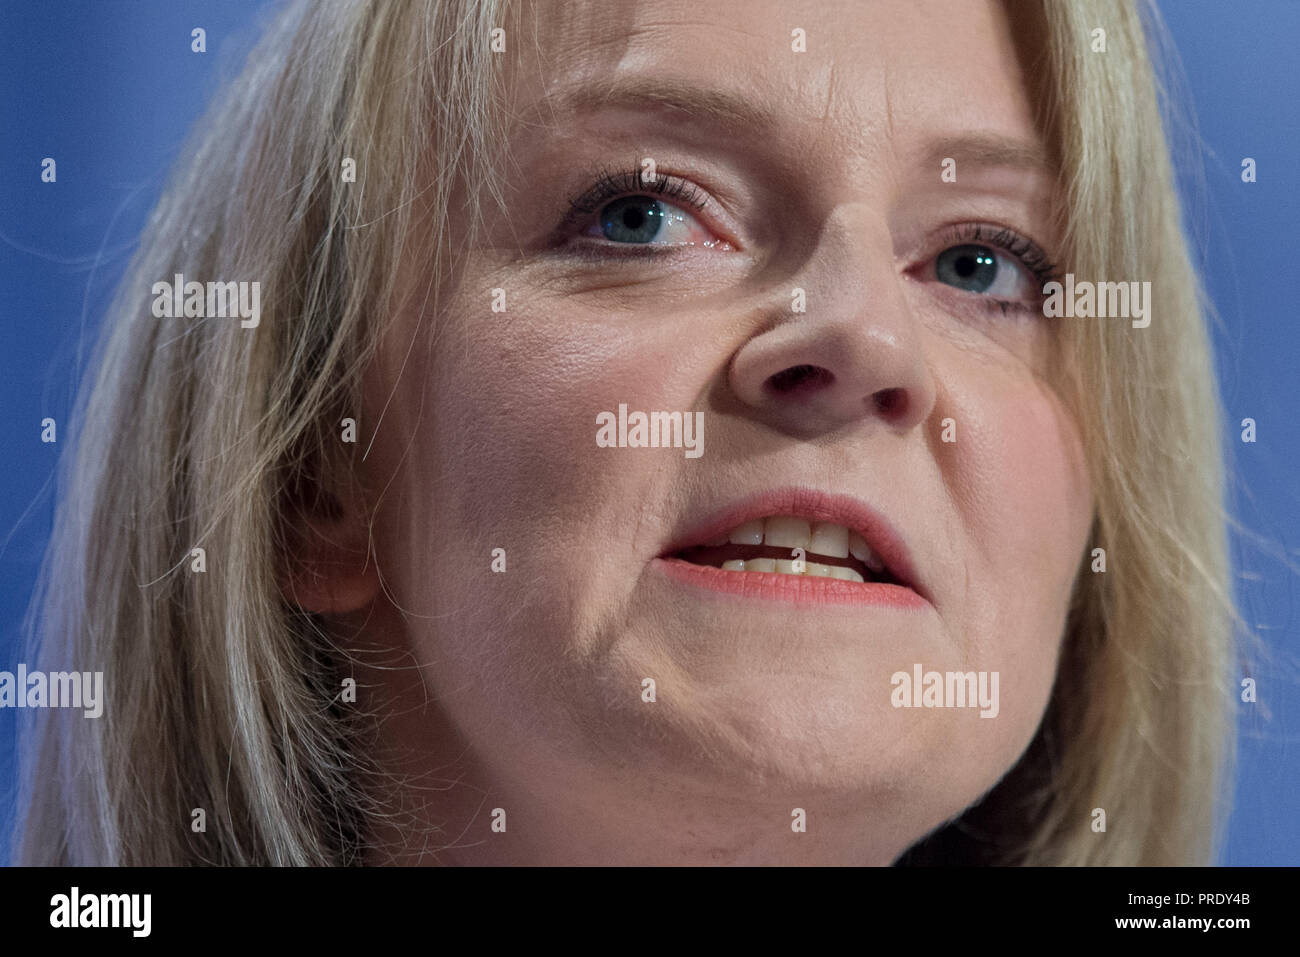 Birmingham, UK. 1st October 2018. Liz Truss, Chief Secretary to the Treasury and Conservative MP for South West Norfolk, speaks at the Conservative Party Conference in Birmingham. © Russell Hart/Alamy Live News. - Stock Image